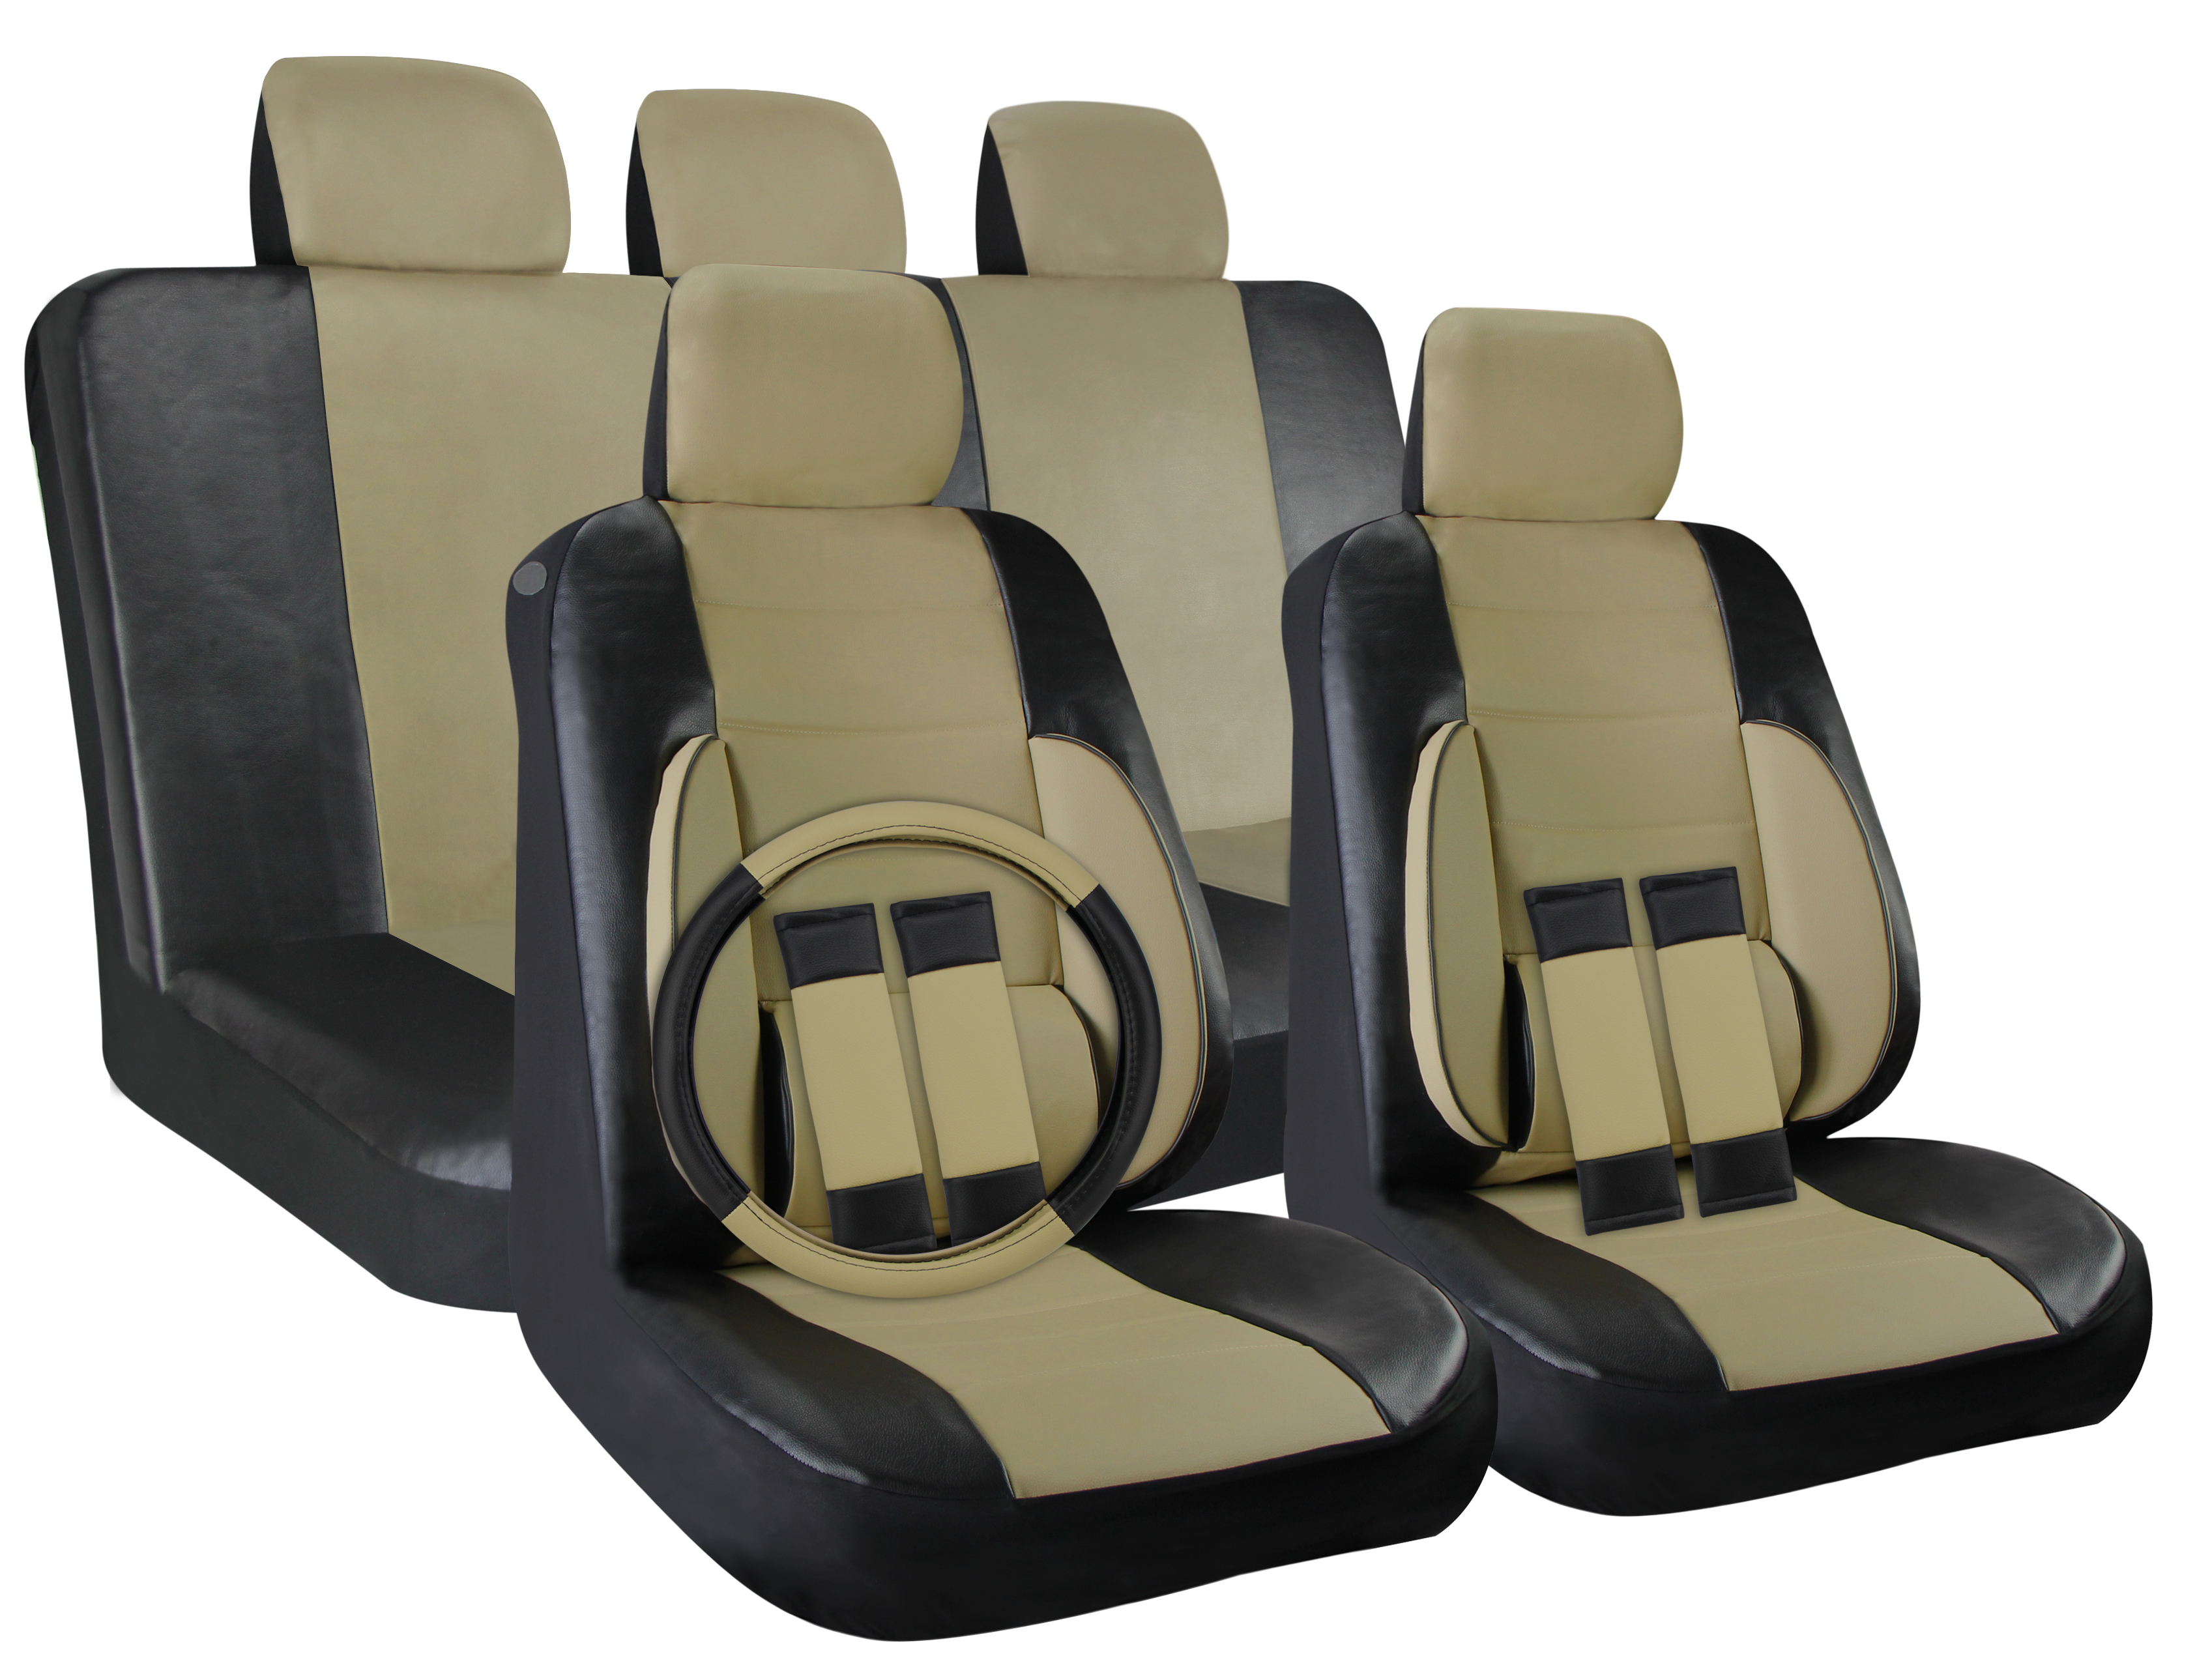 faux leather car seat covers black beige tan 17pc full set w steering wheel ebay. Black Bedroom Furniture Sets. Home Design Ideas